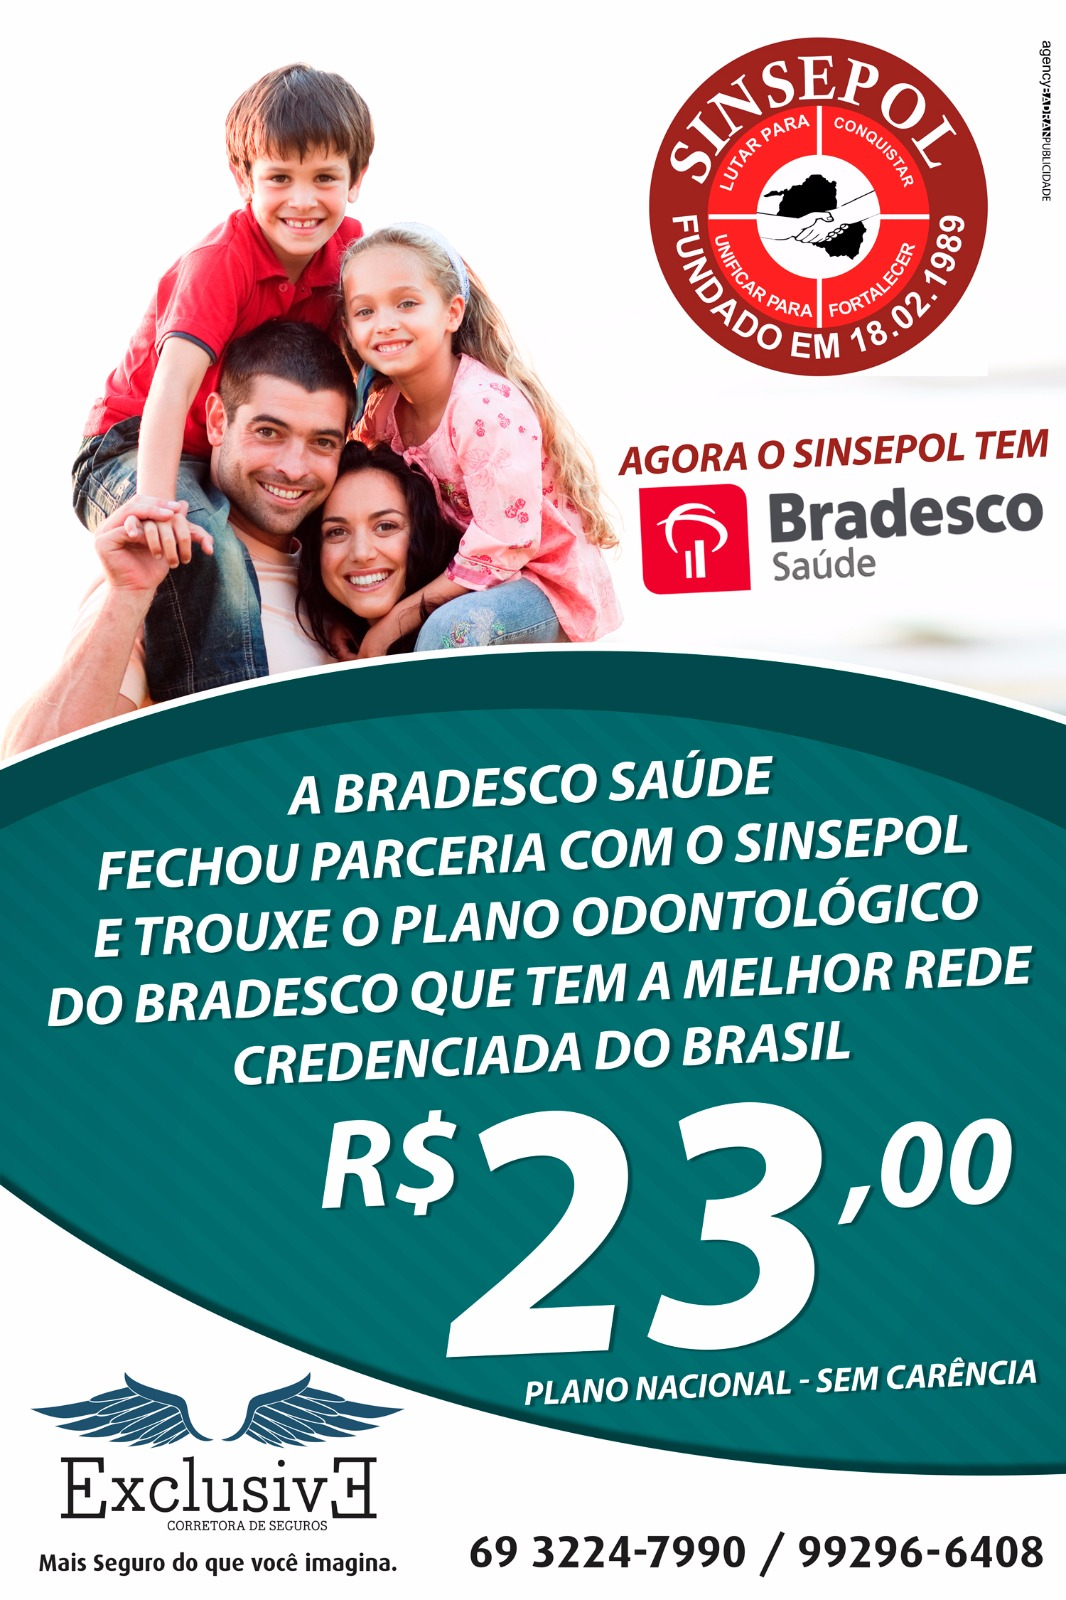 SINSEPOL BRADESCO DENTAL